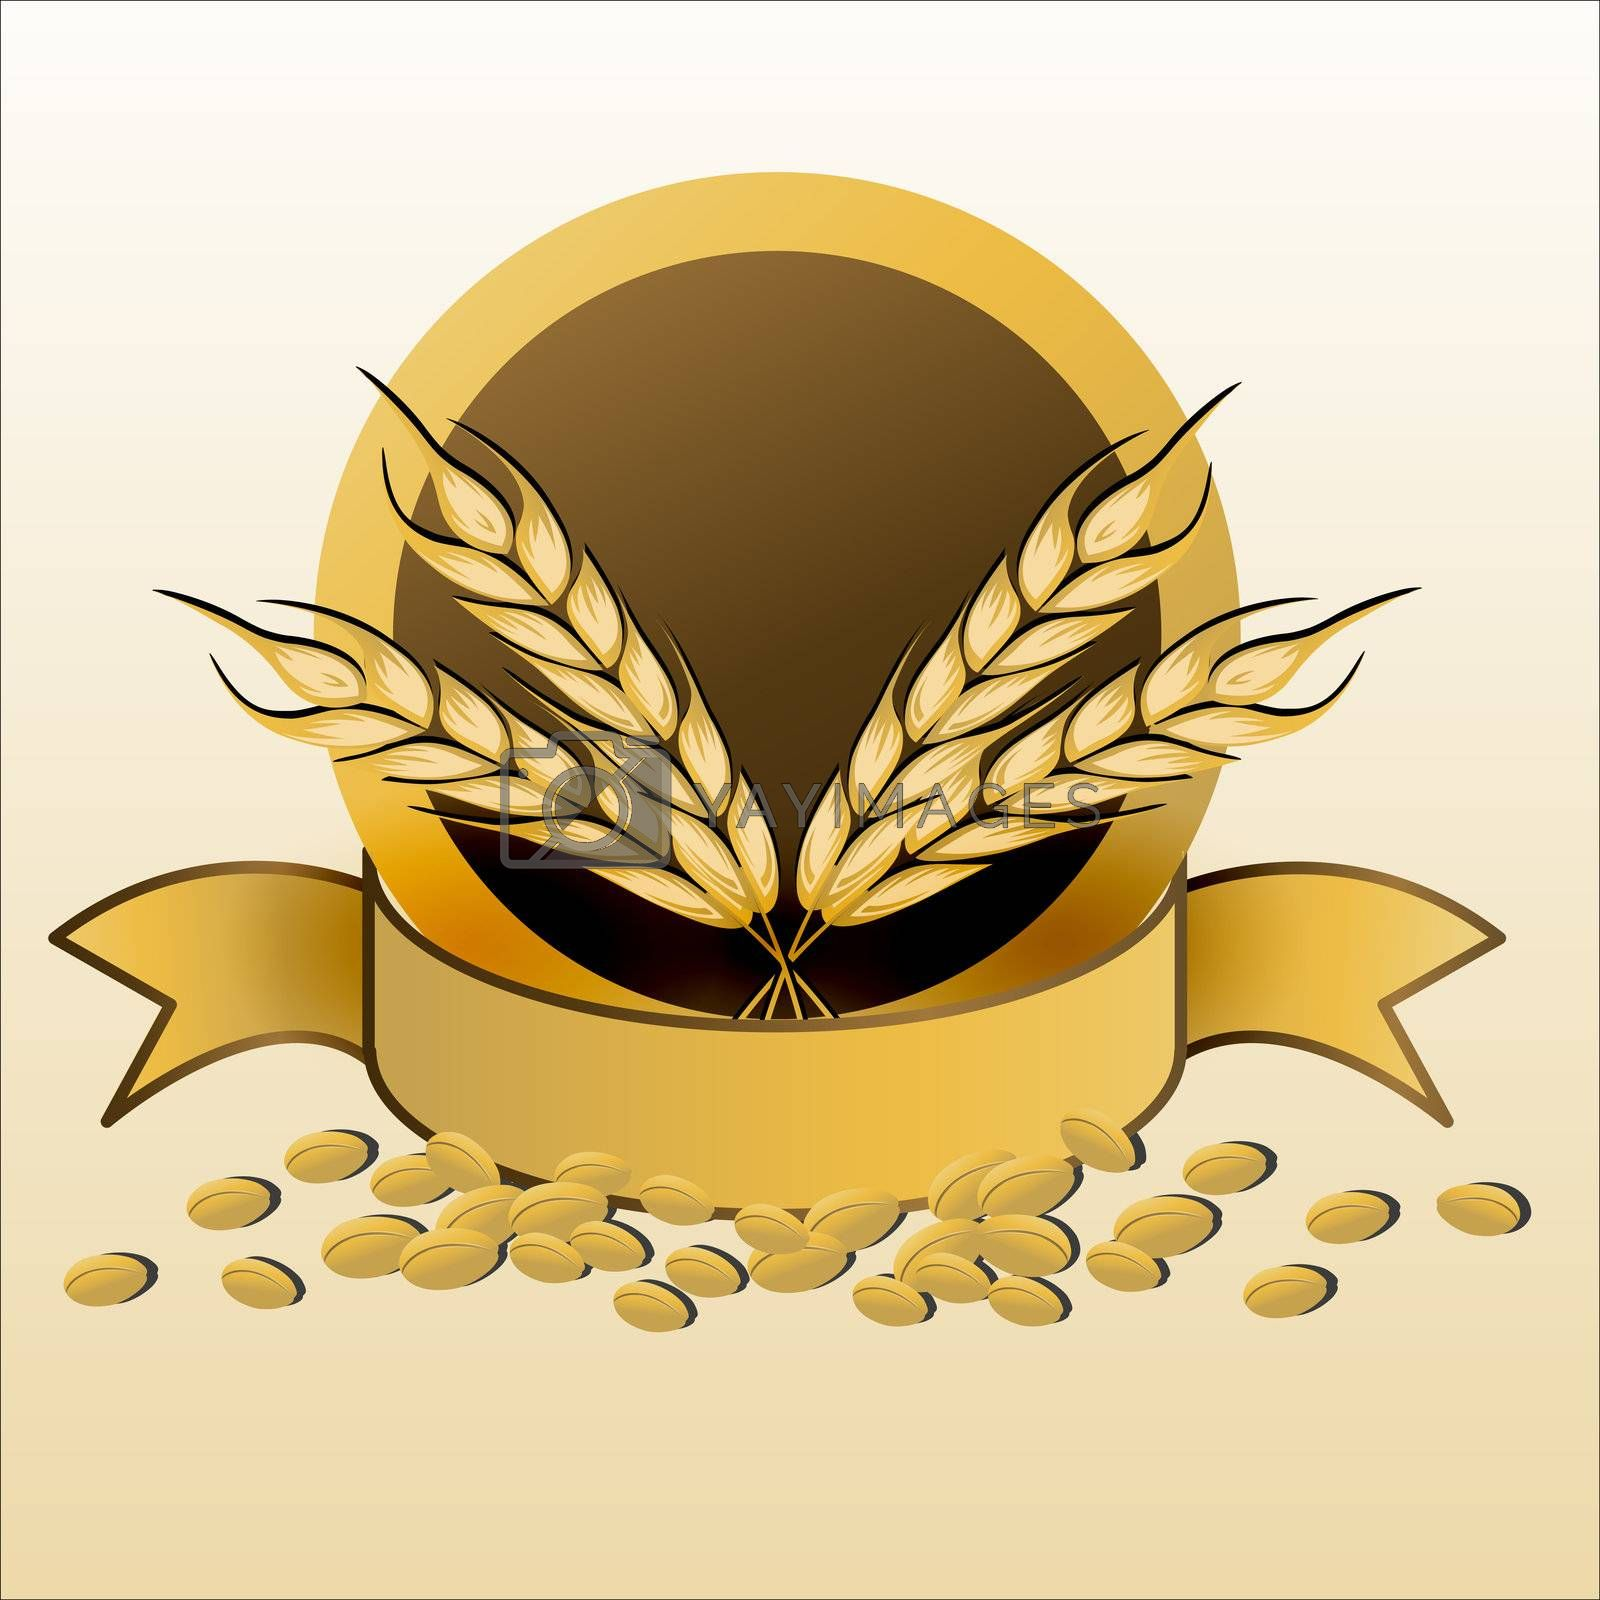 Royalty free image of grain with ribbon by get4net